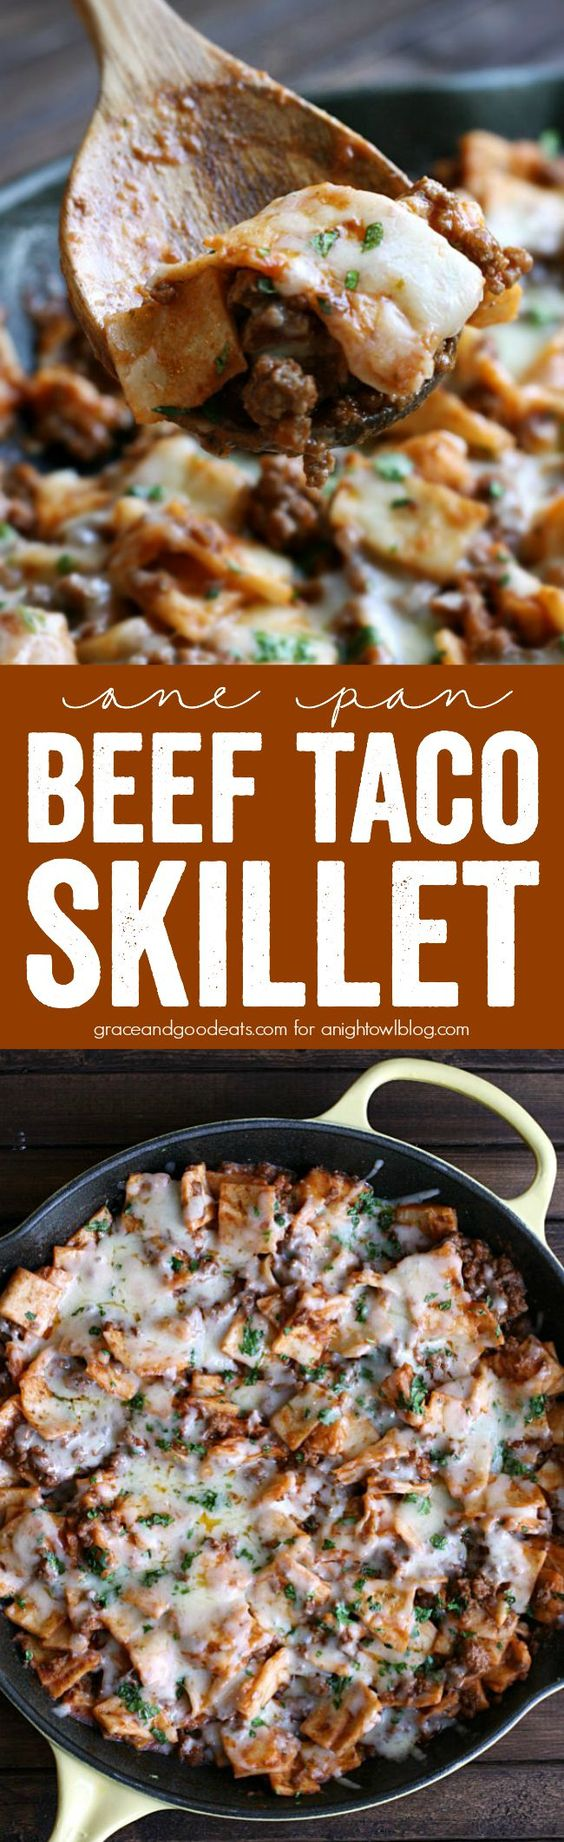 One Pan Beef Taco Skillet | Recipe | Skillets, I am and Tacos